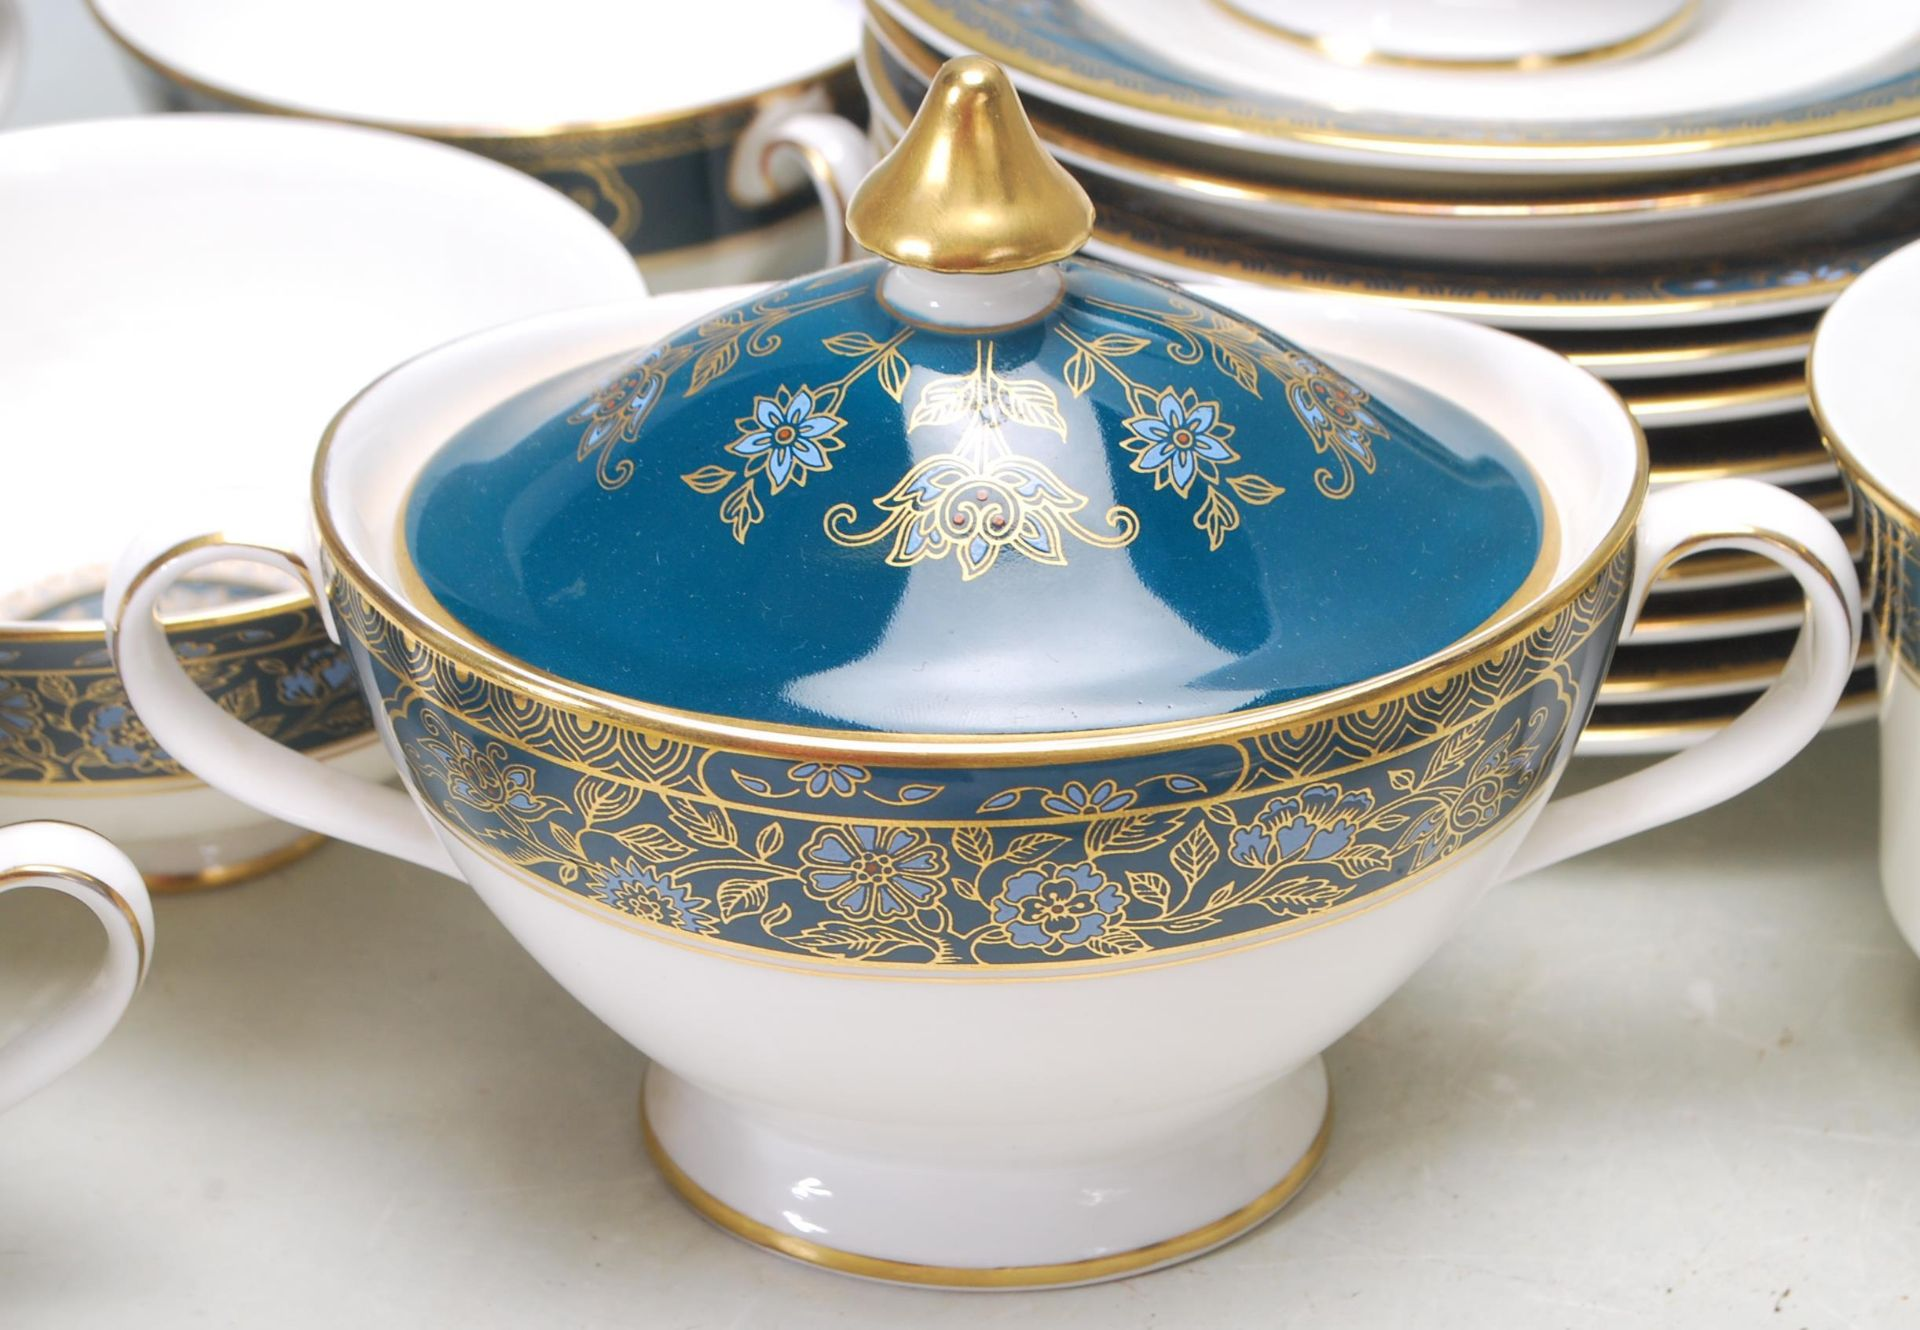 COLLECTION OF LATE 20TH CENTORUY ROYAL DOULTON FINE BONE CHINA DINNER SERVICE - Image 5 of 8